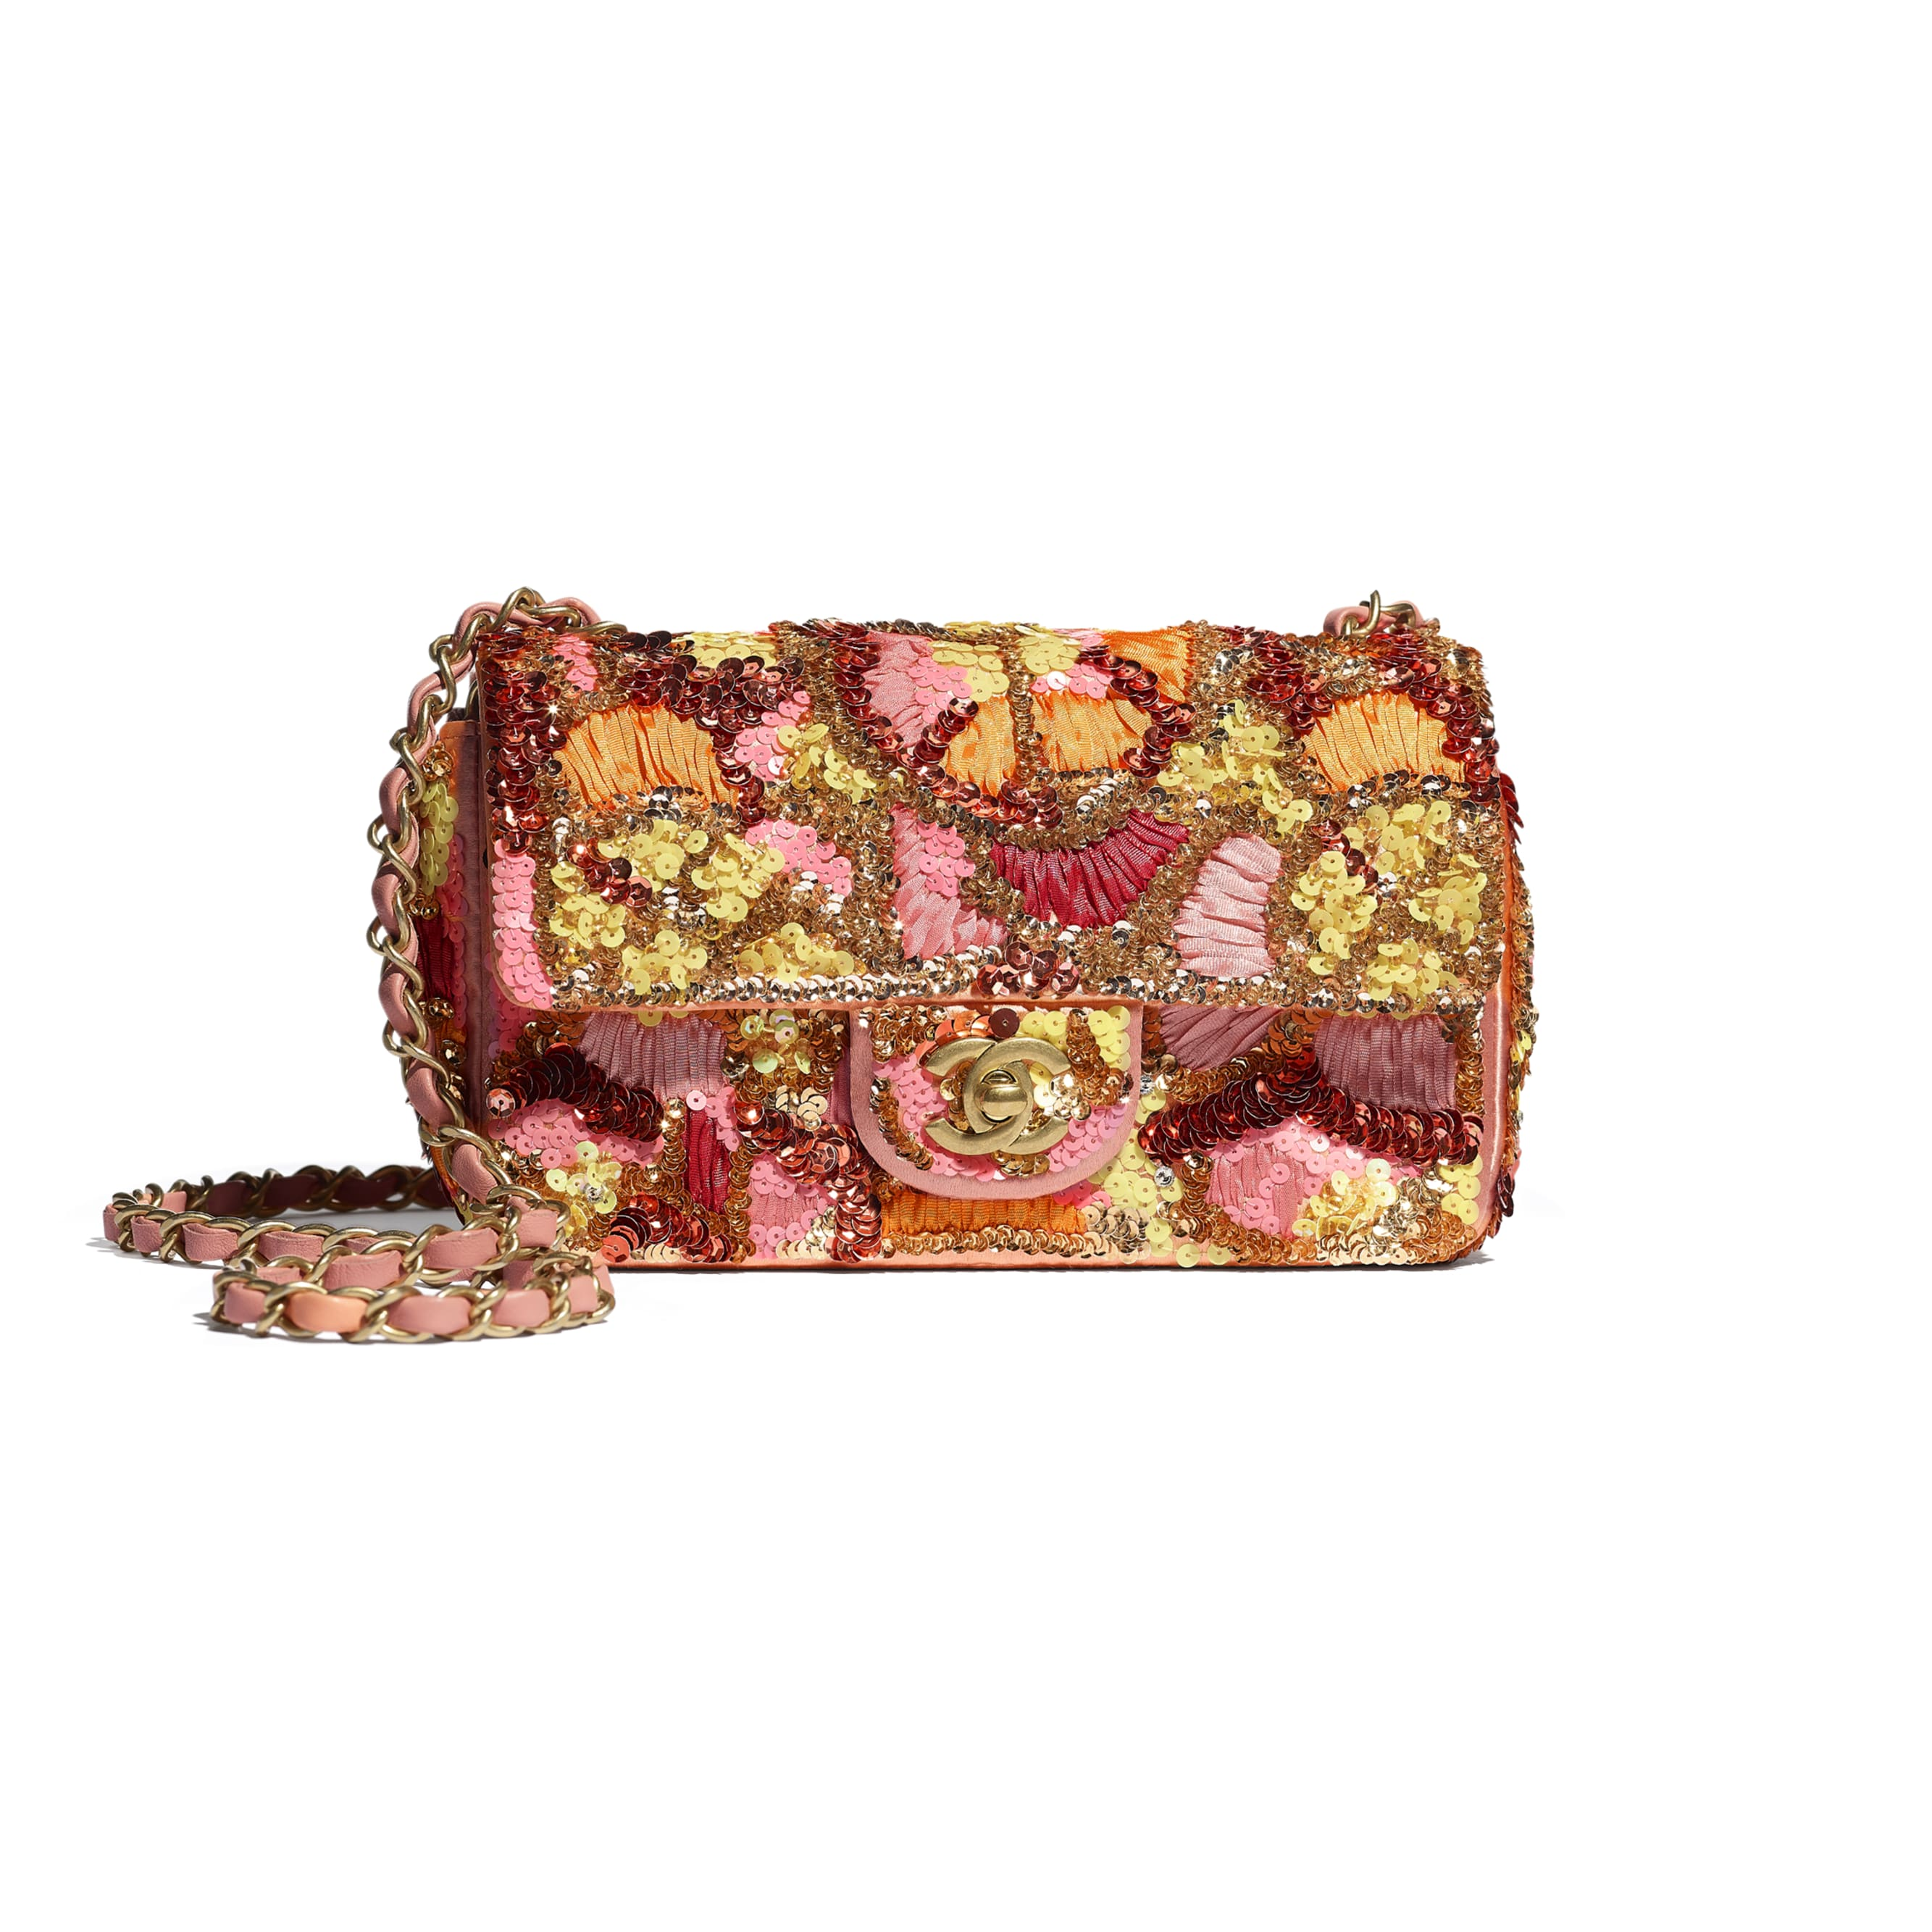 Mini Flap Bag - Pink, White, Yellow & Orange - Sequins, Mixed Fibers, Glass Pearls, Lambskin & Gold-Tone Metal - CHANEL - Default view - see standard sized version